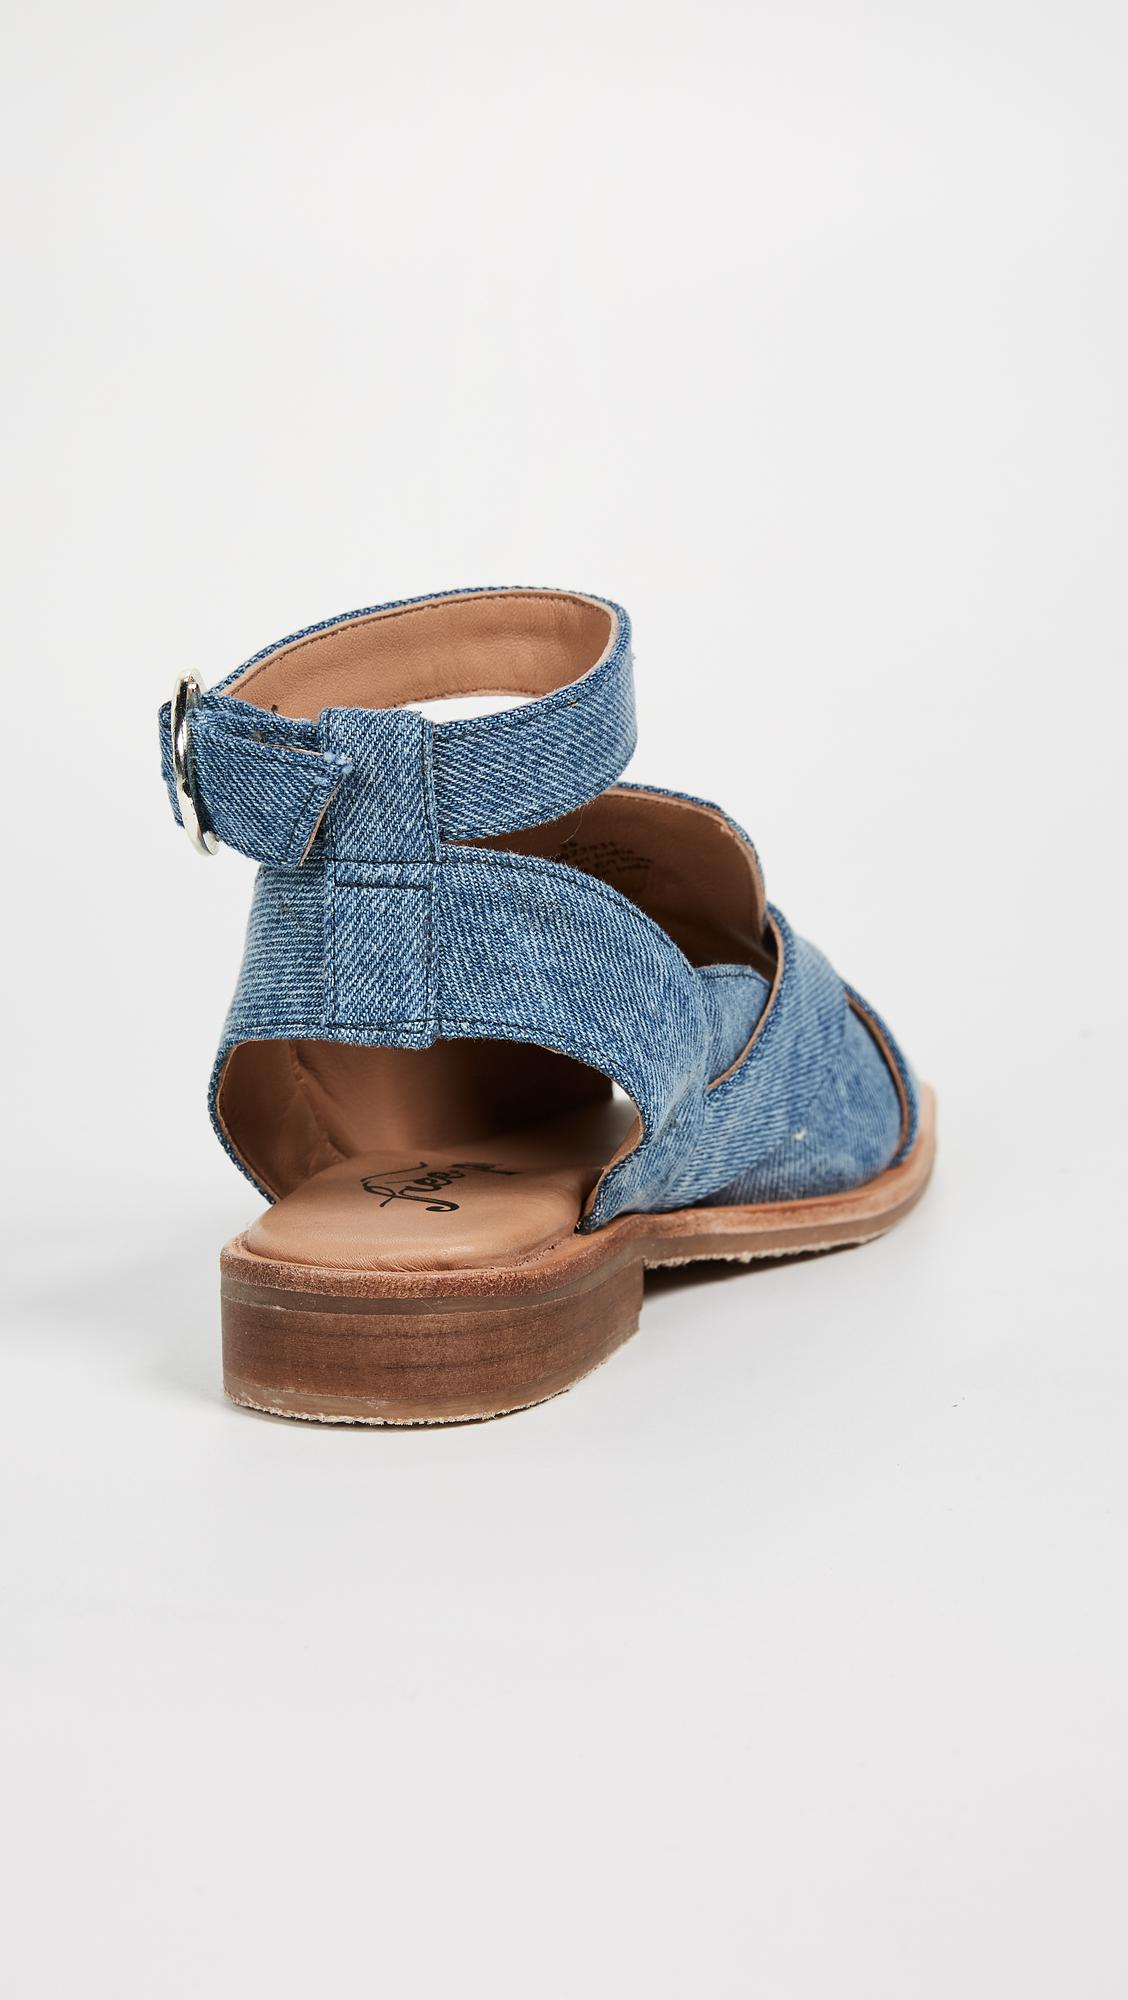 01776b60e72 Lyst - Free People Denim Catherine Loafer Sandals in Blue